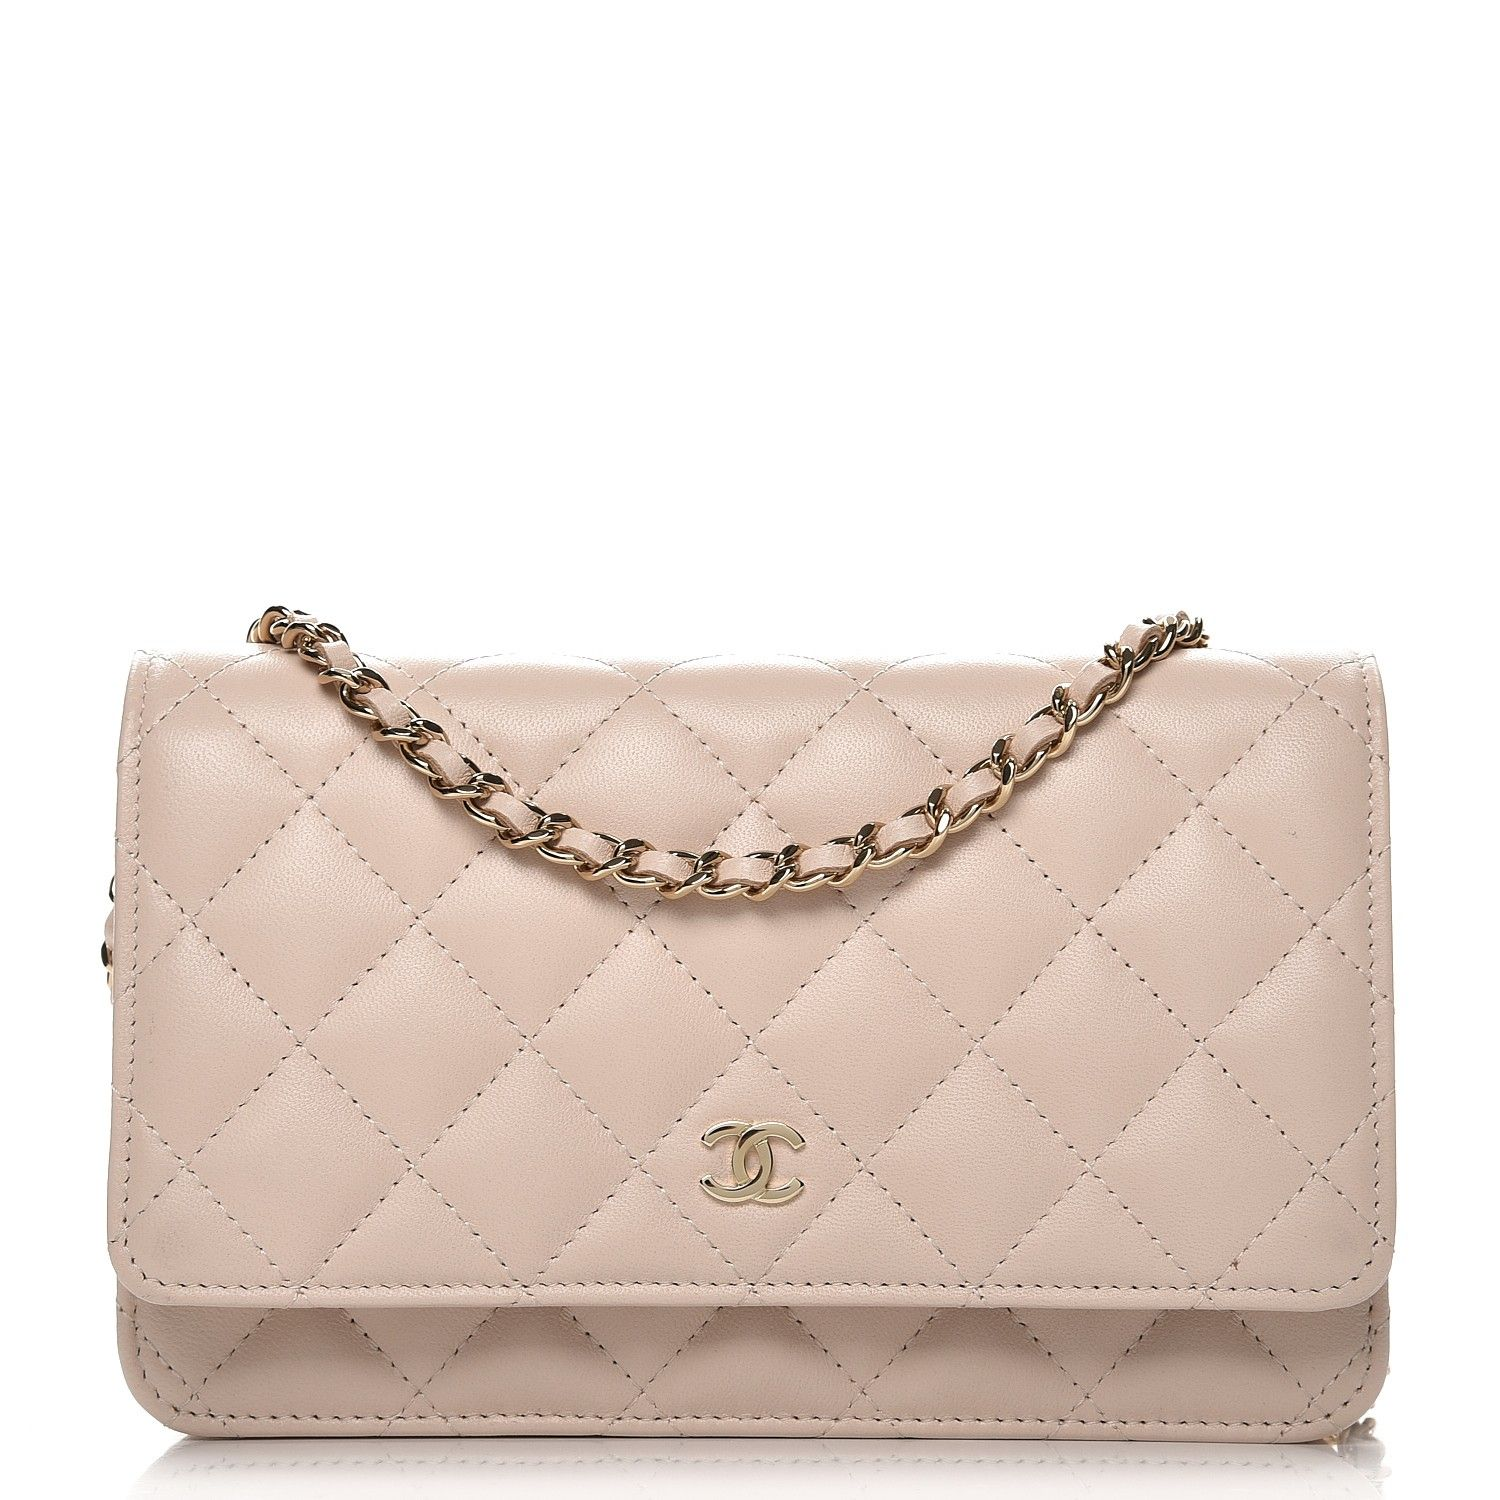 de0d49cb18c6 This is an authentic CHANEL Lambskin Quilted Wallet On Chain WOC in Beige  Clair. This